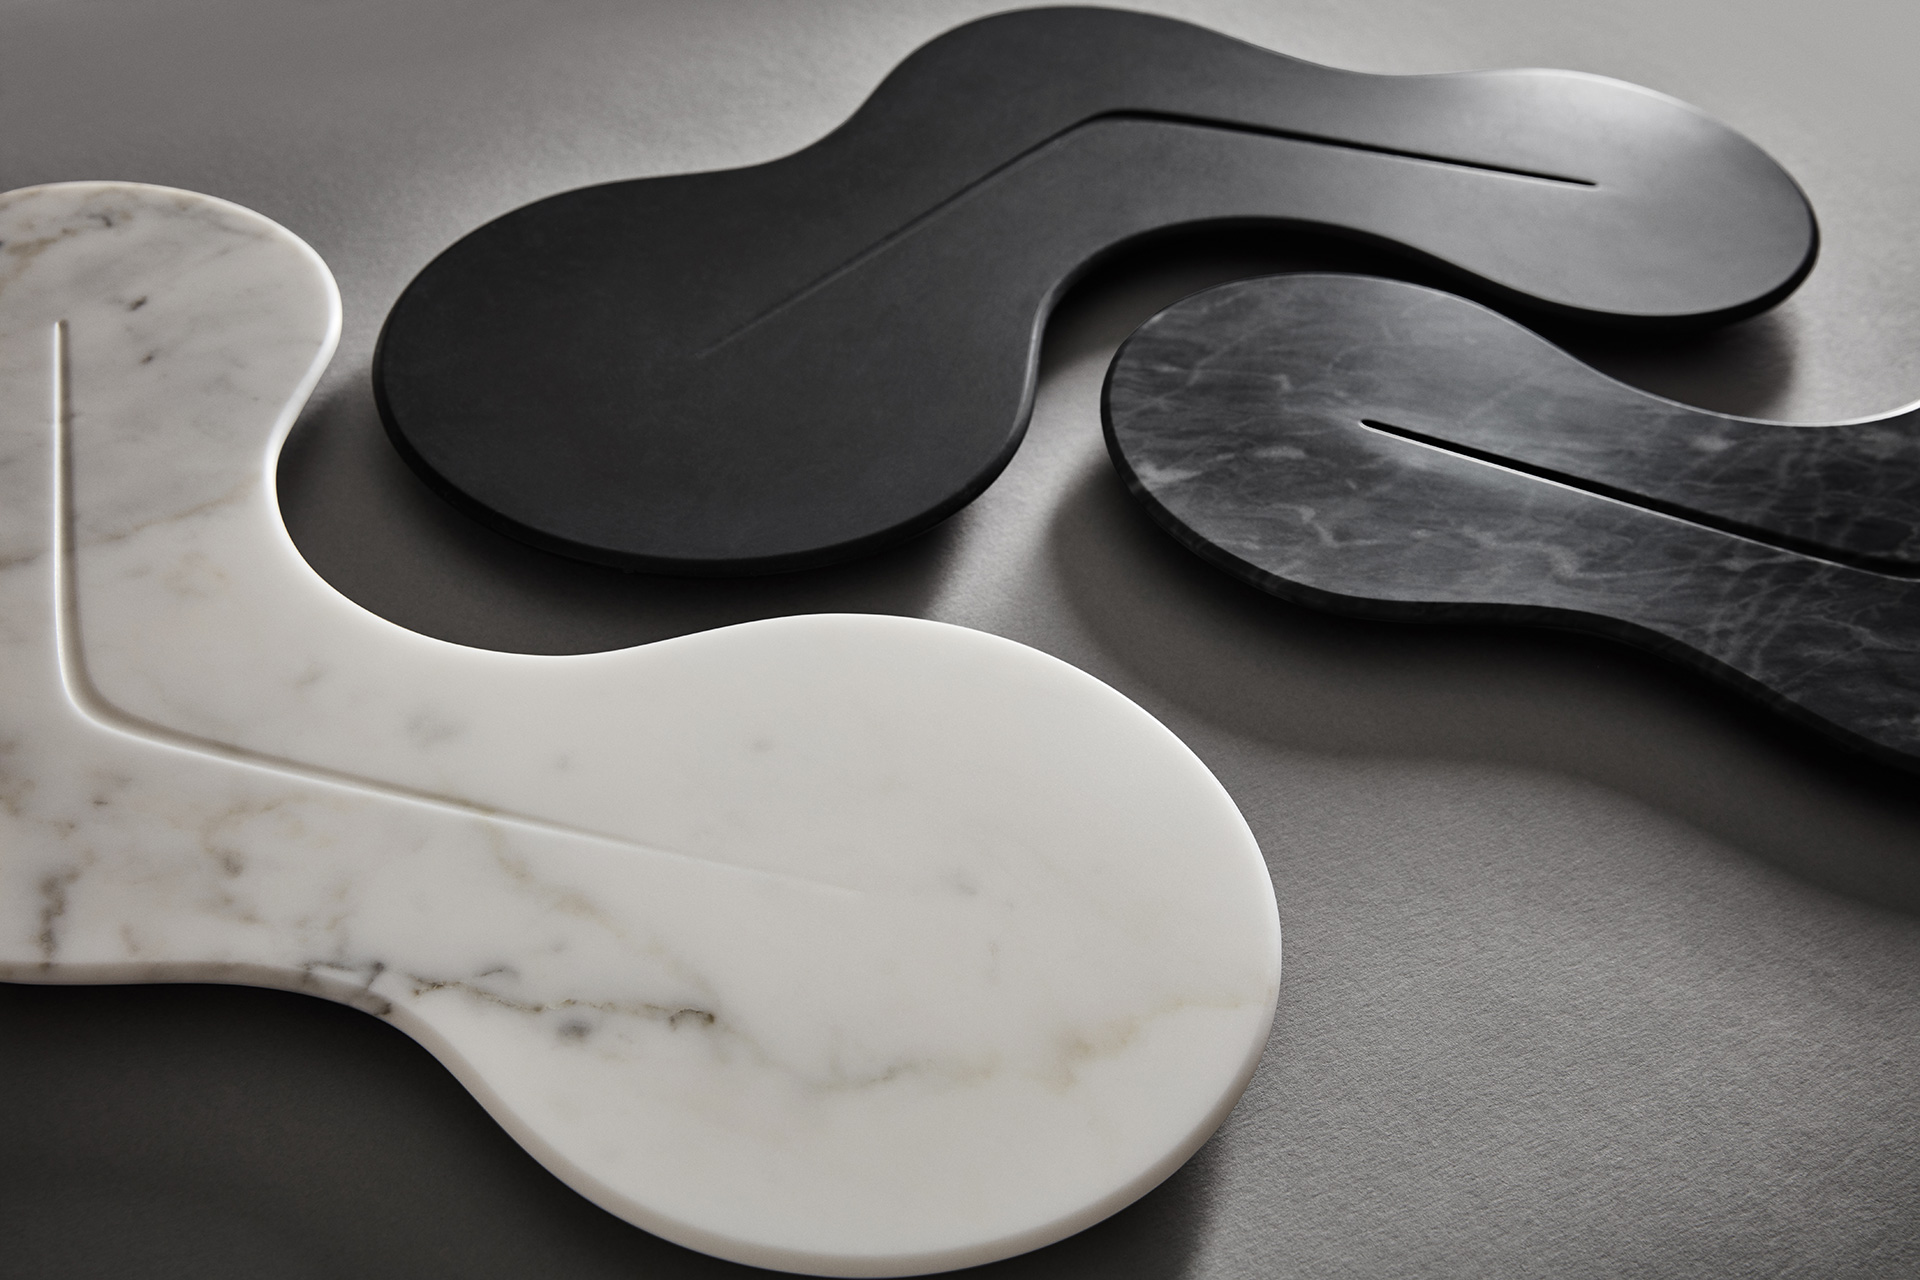 Zaha Hadid Design Collection 2019 – Cell Platter| Design Shanghai 2019| Zaha Hadid Design| STIR